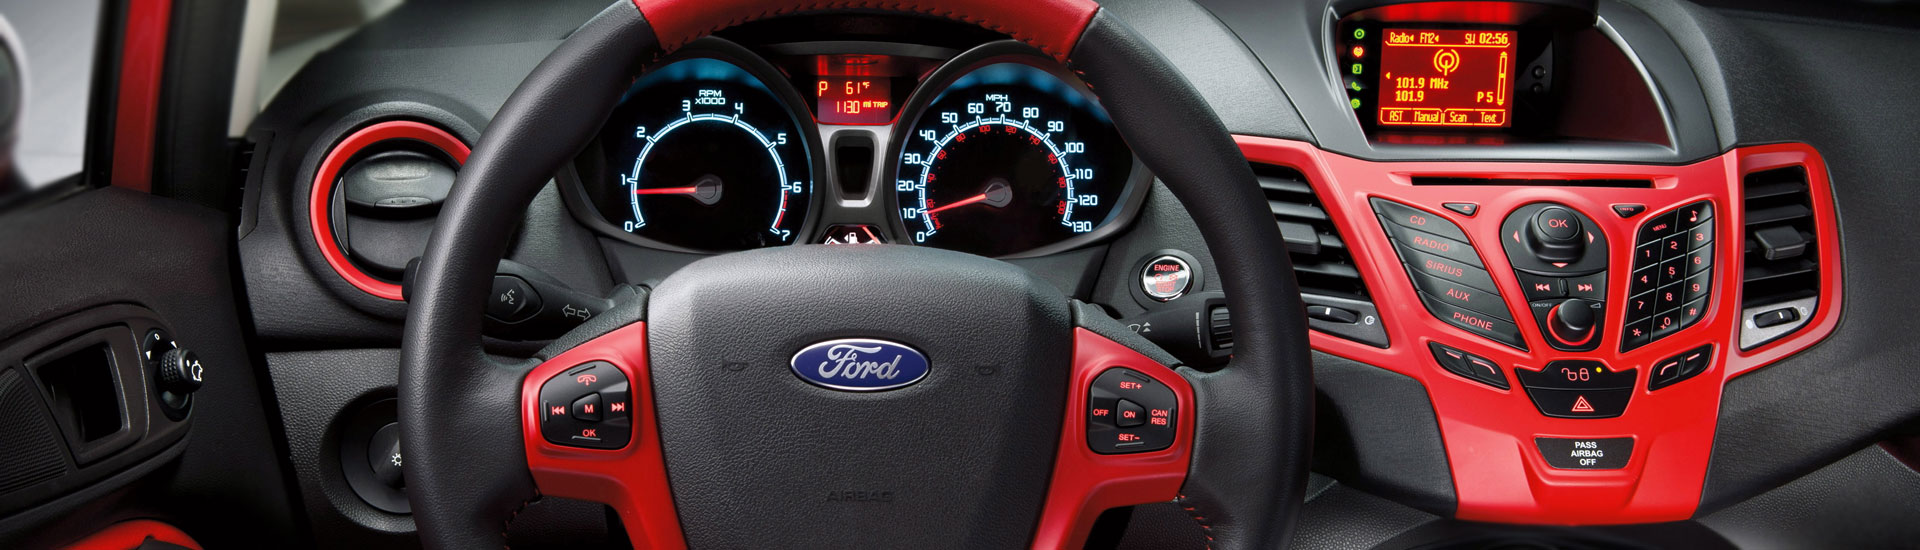 Vinyl Steering Wheel Cover For Ford Fusion 2014 2014 Ford